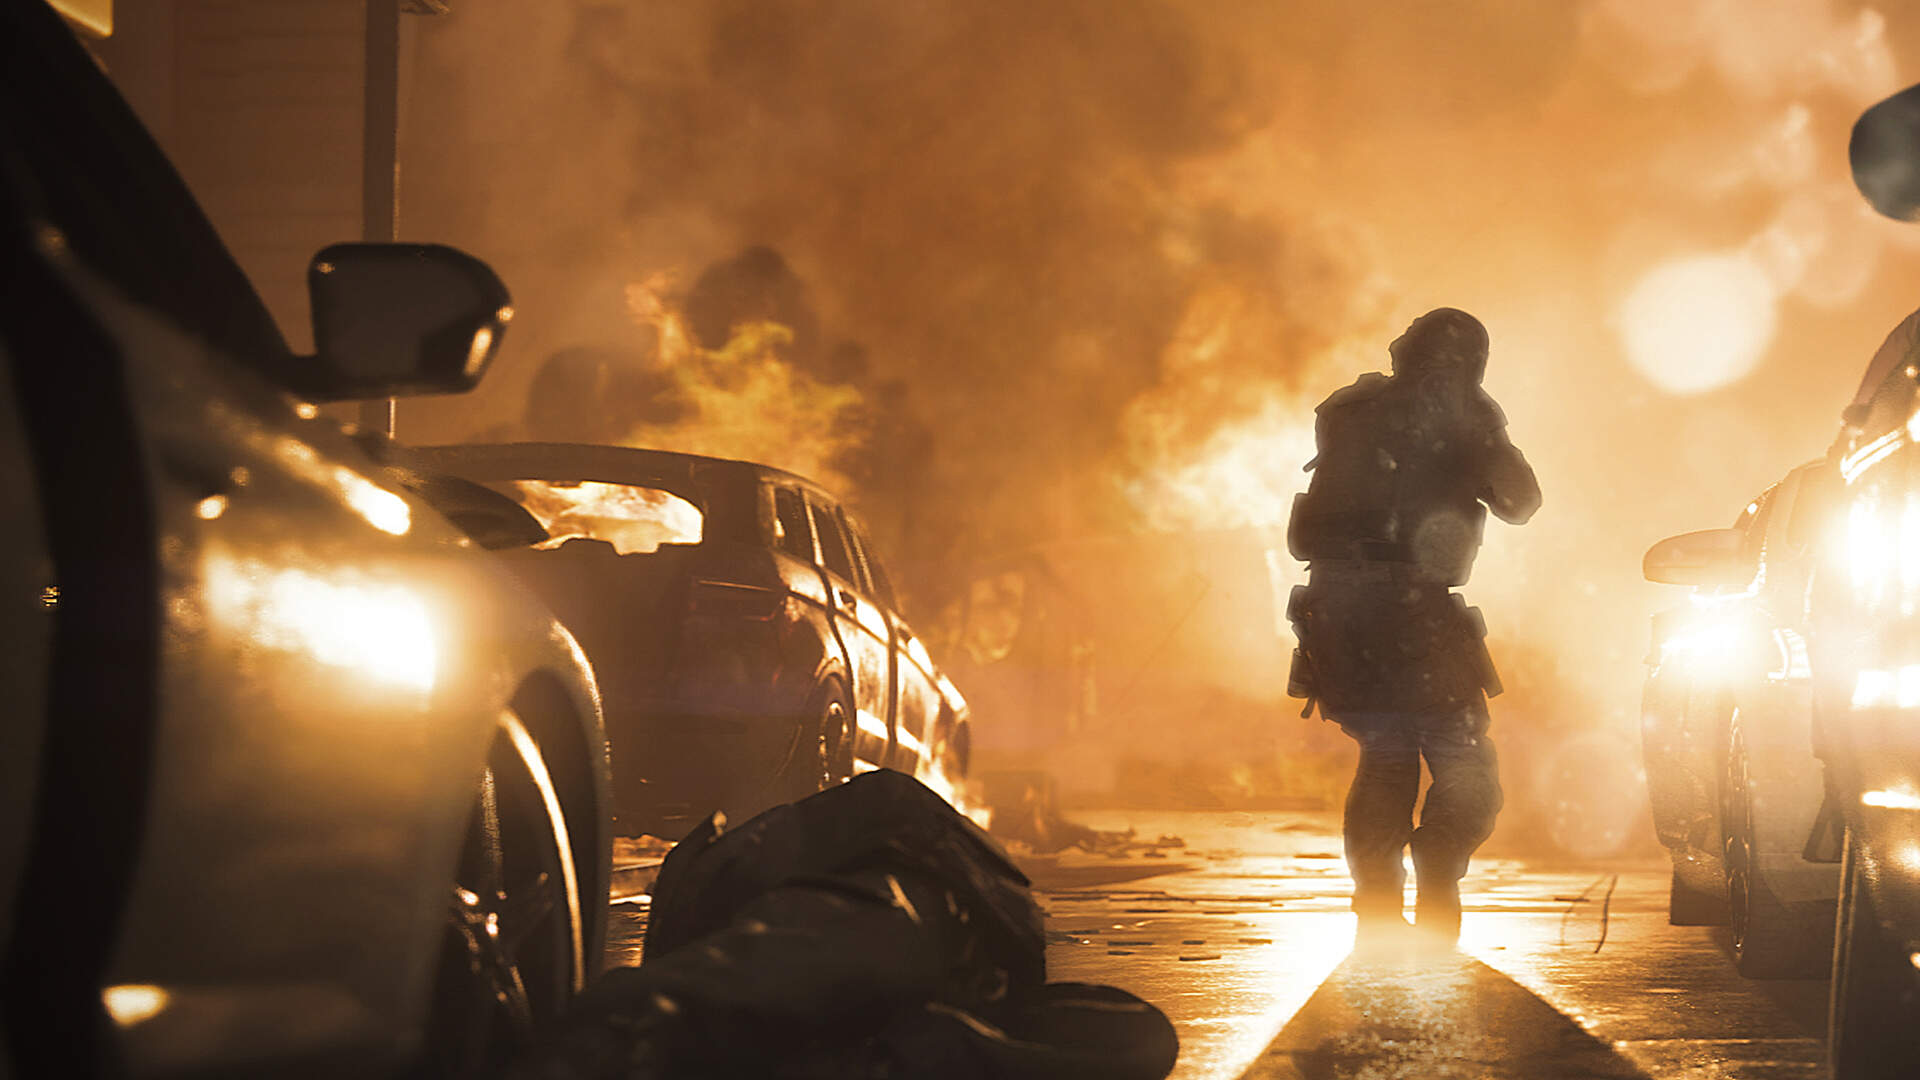 Call of Duty: Modern Warfare First Look: The Moments That Show That The Single-Player Campaign is Back to its Old Provocative Self